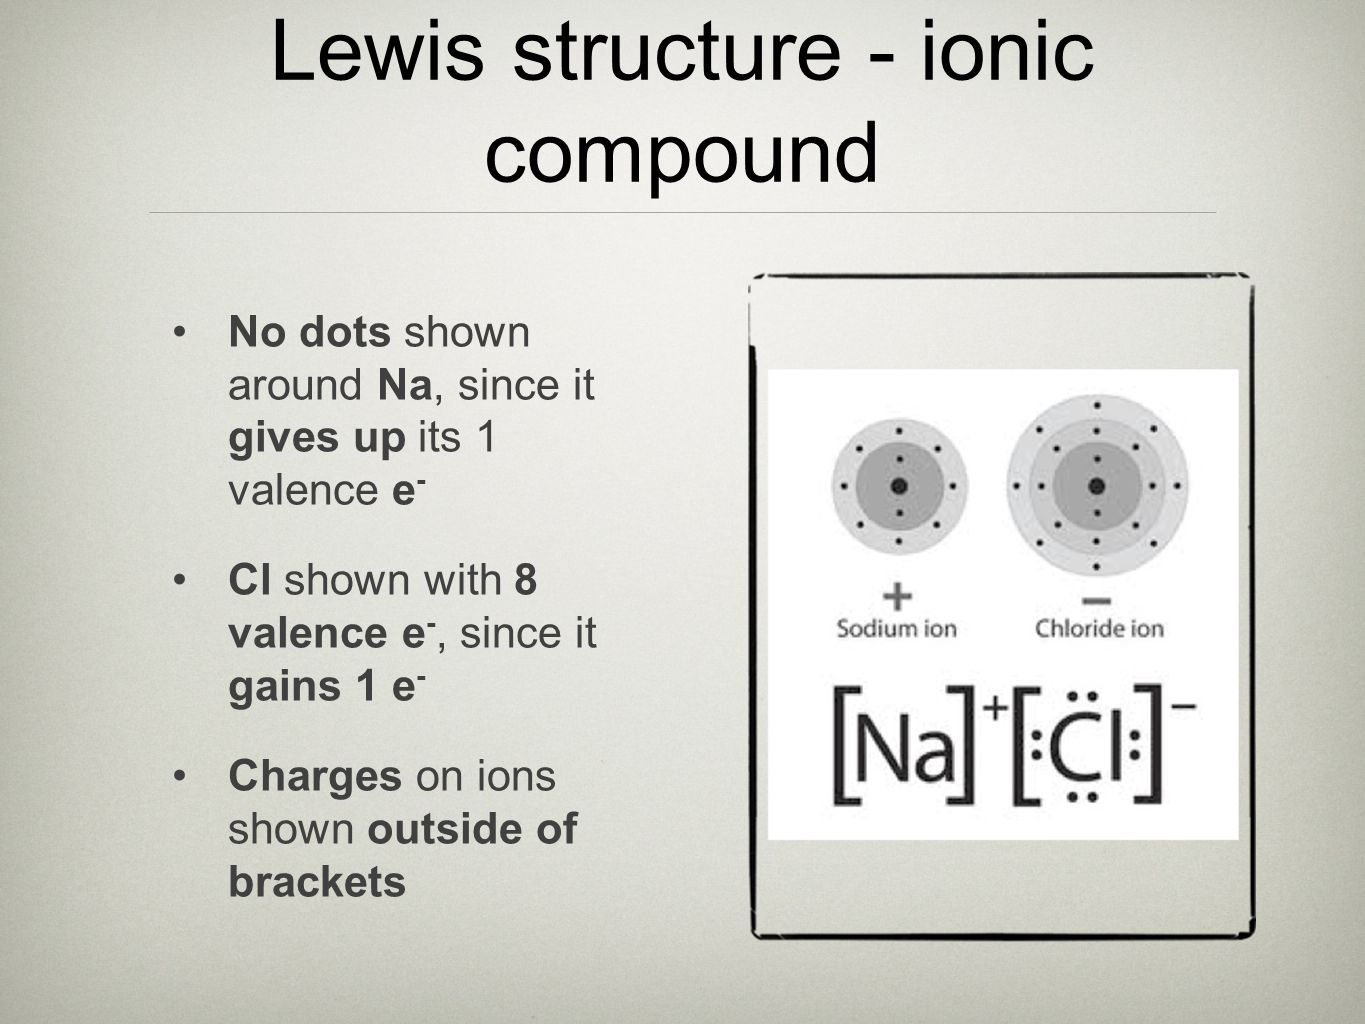 Lewis structure - ionic compound